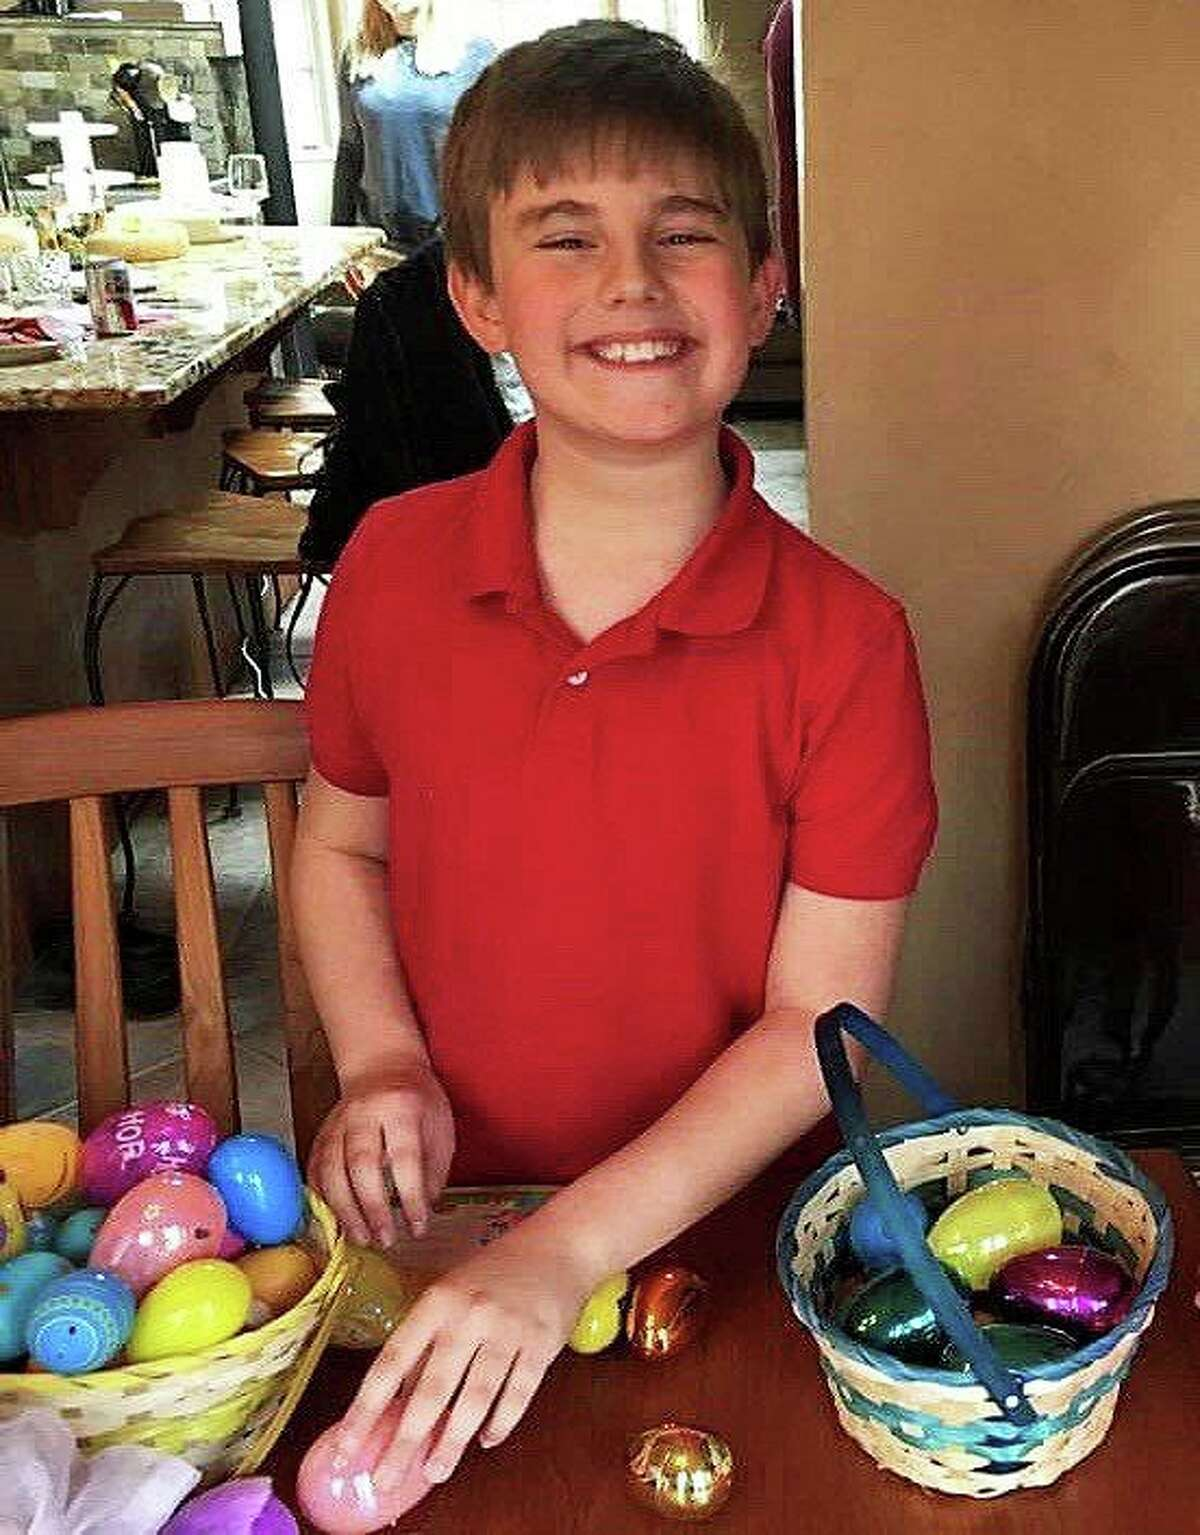 Vinnie Penn's son, Luke, with his haul from an Easter Egg Hunt.